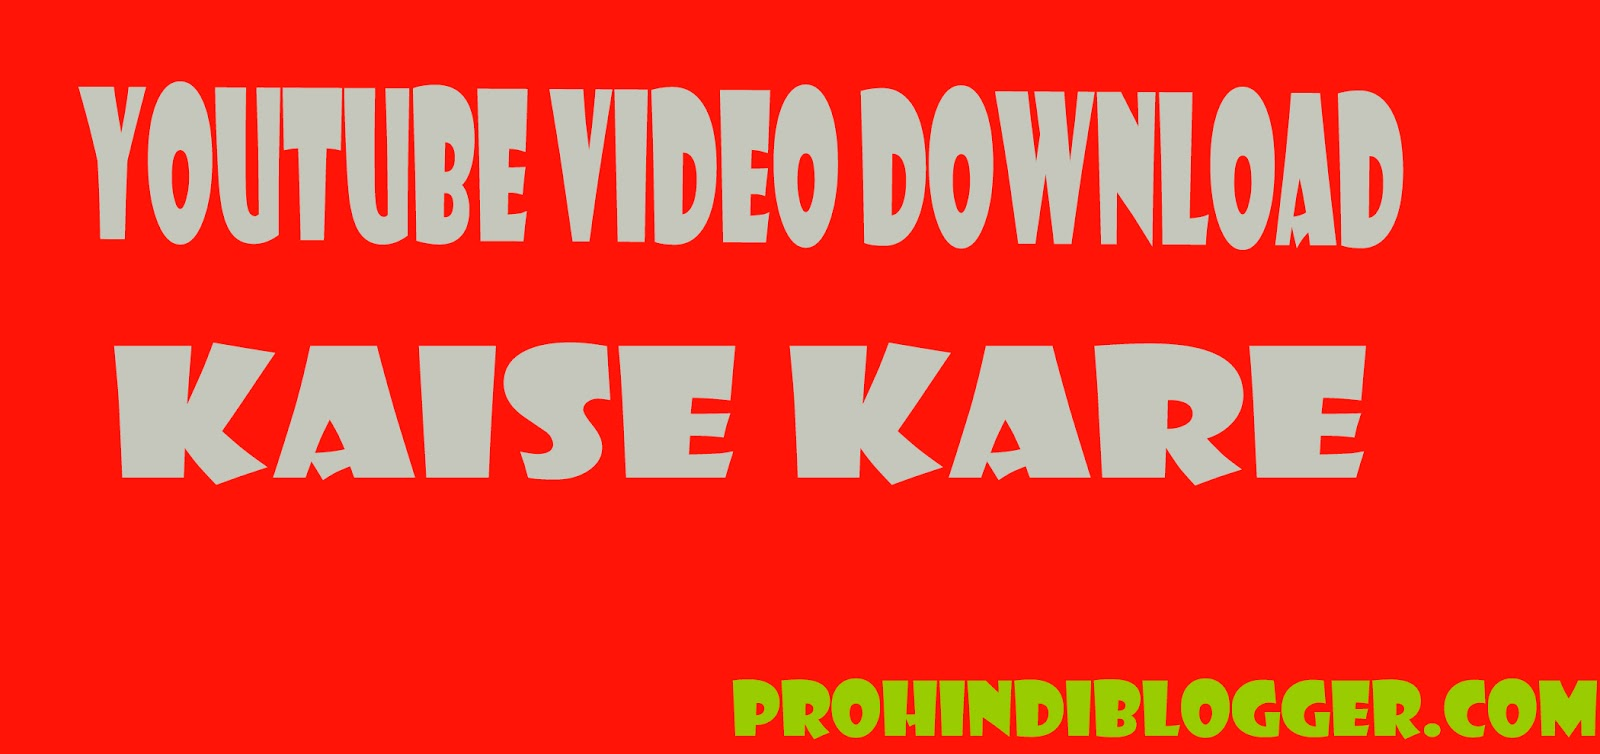 video download kaise kare